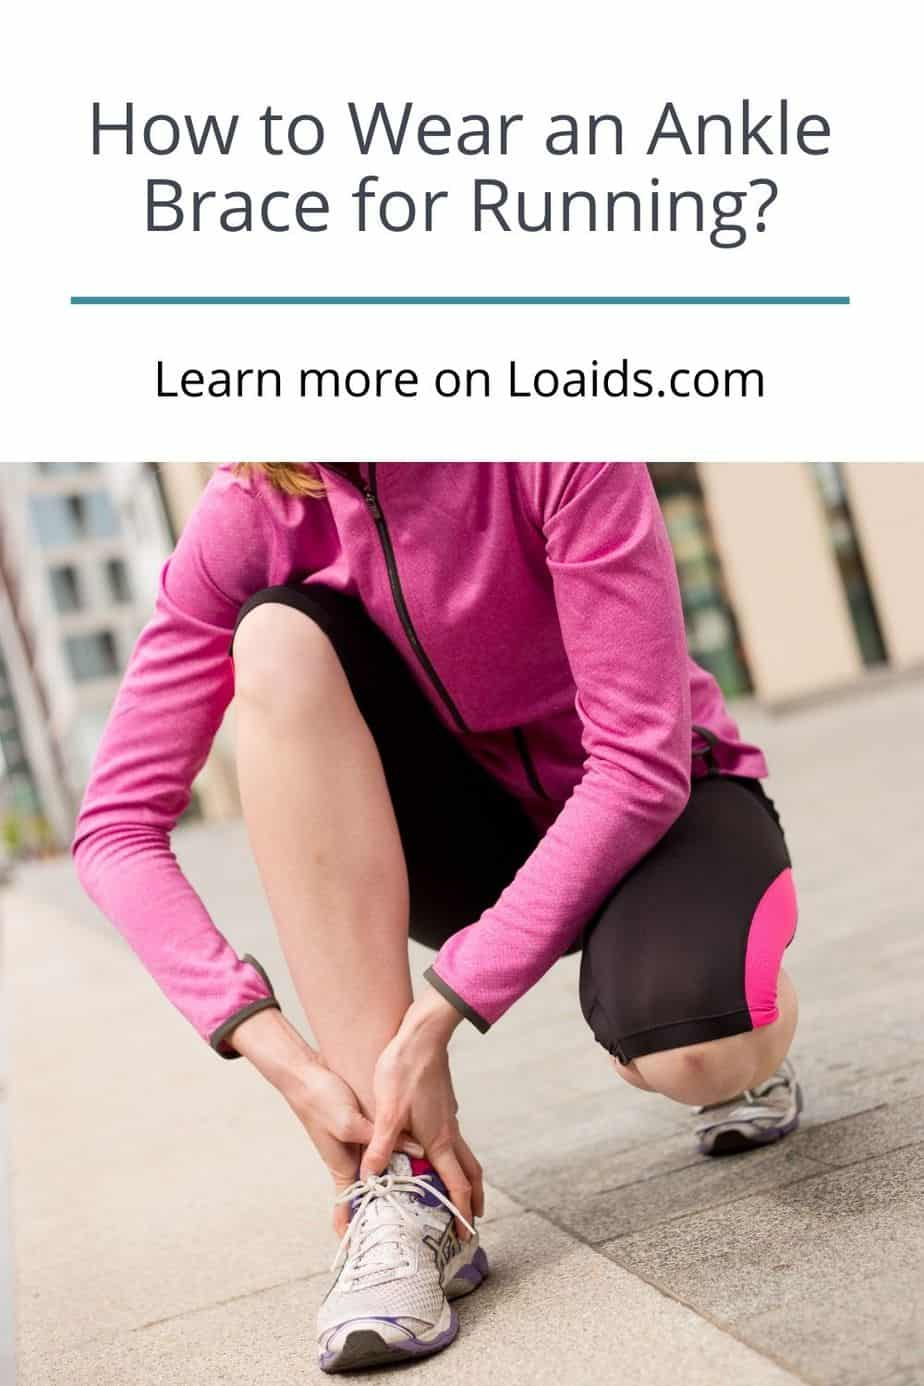 lady holding her aching ankle after running